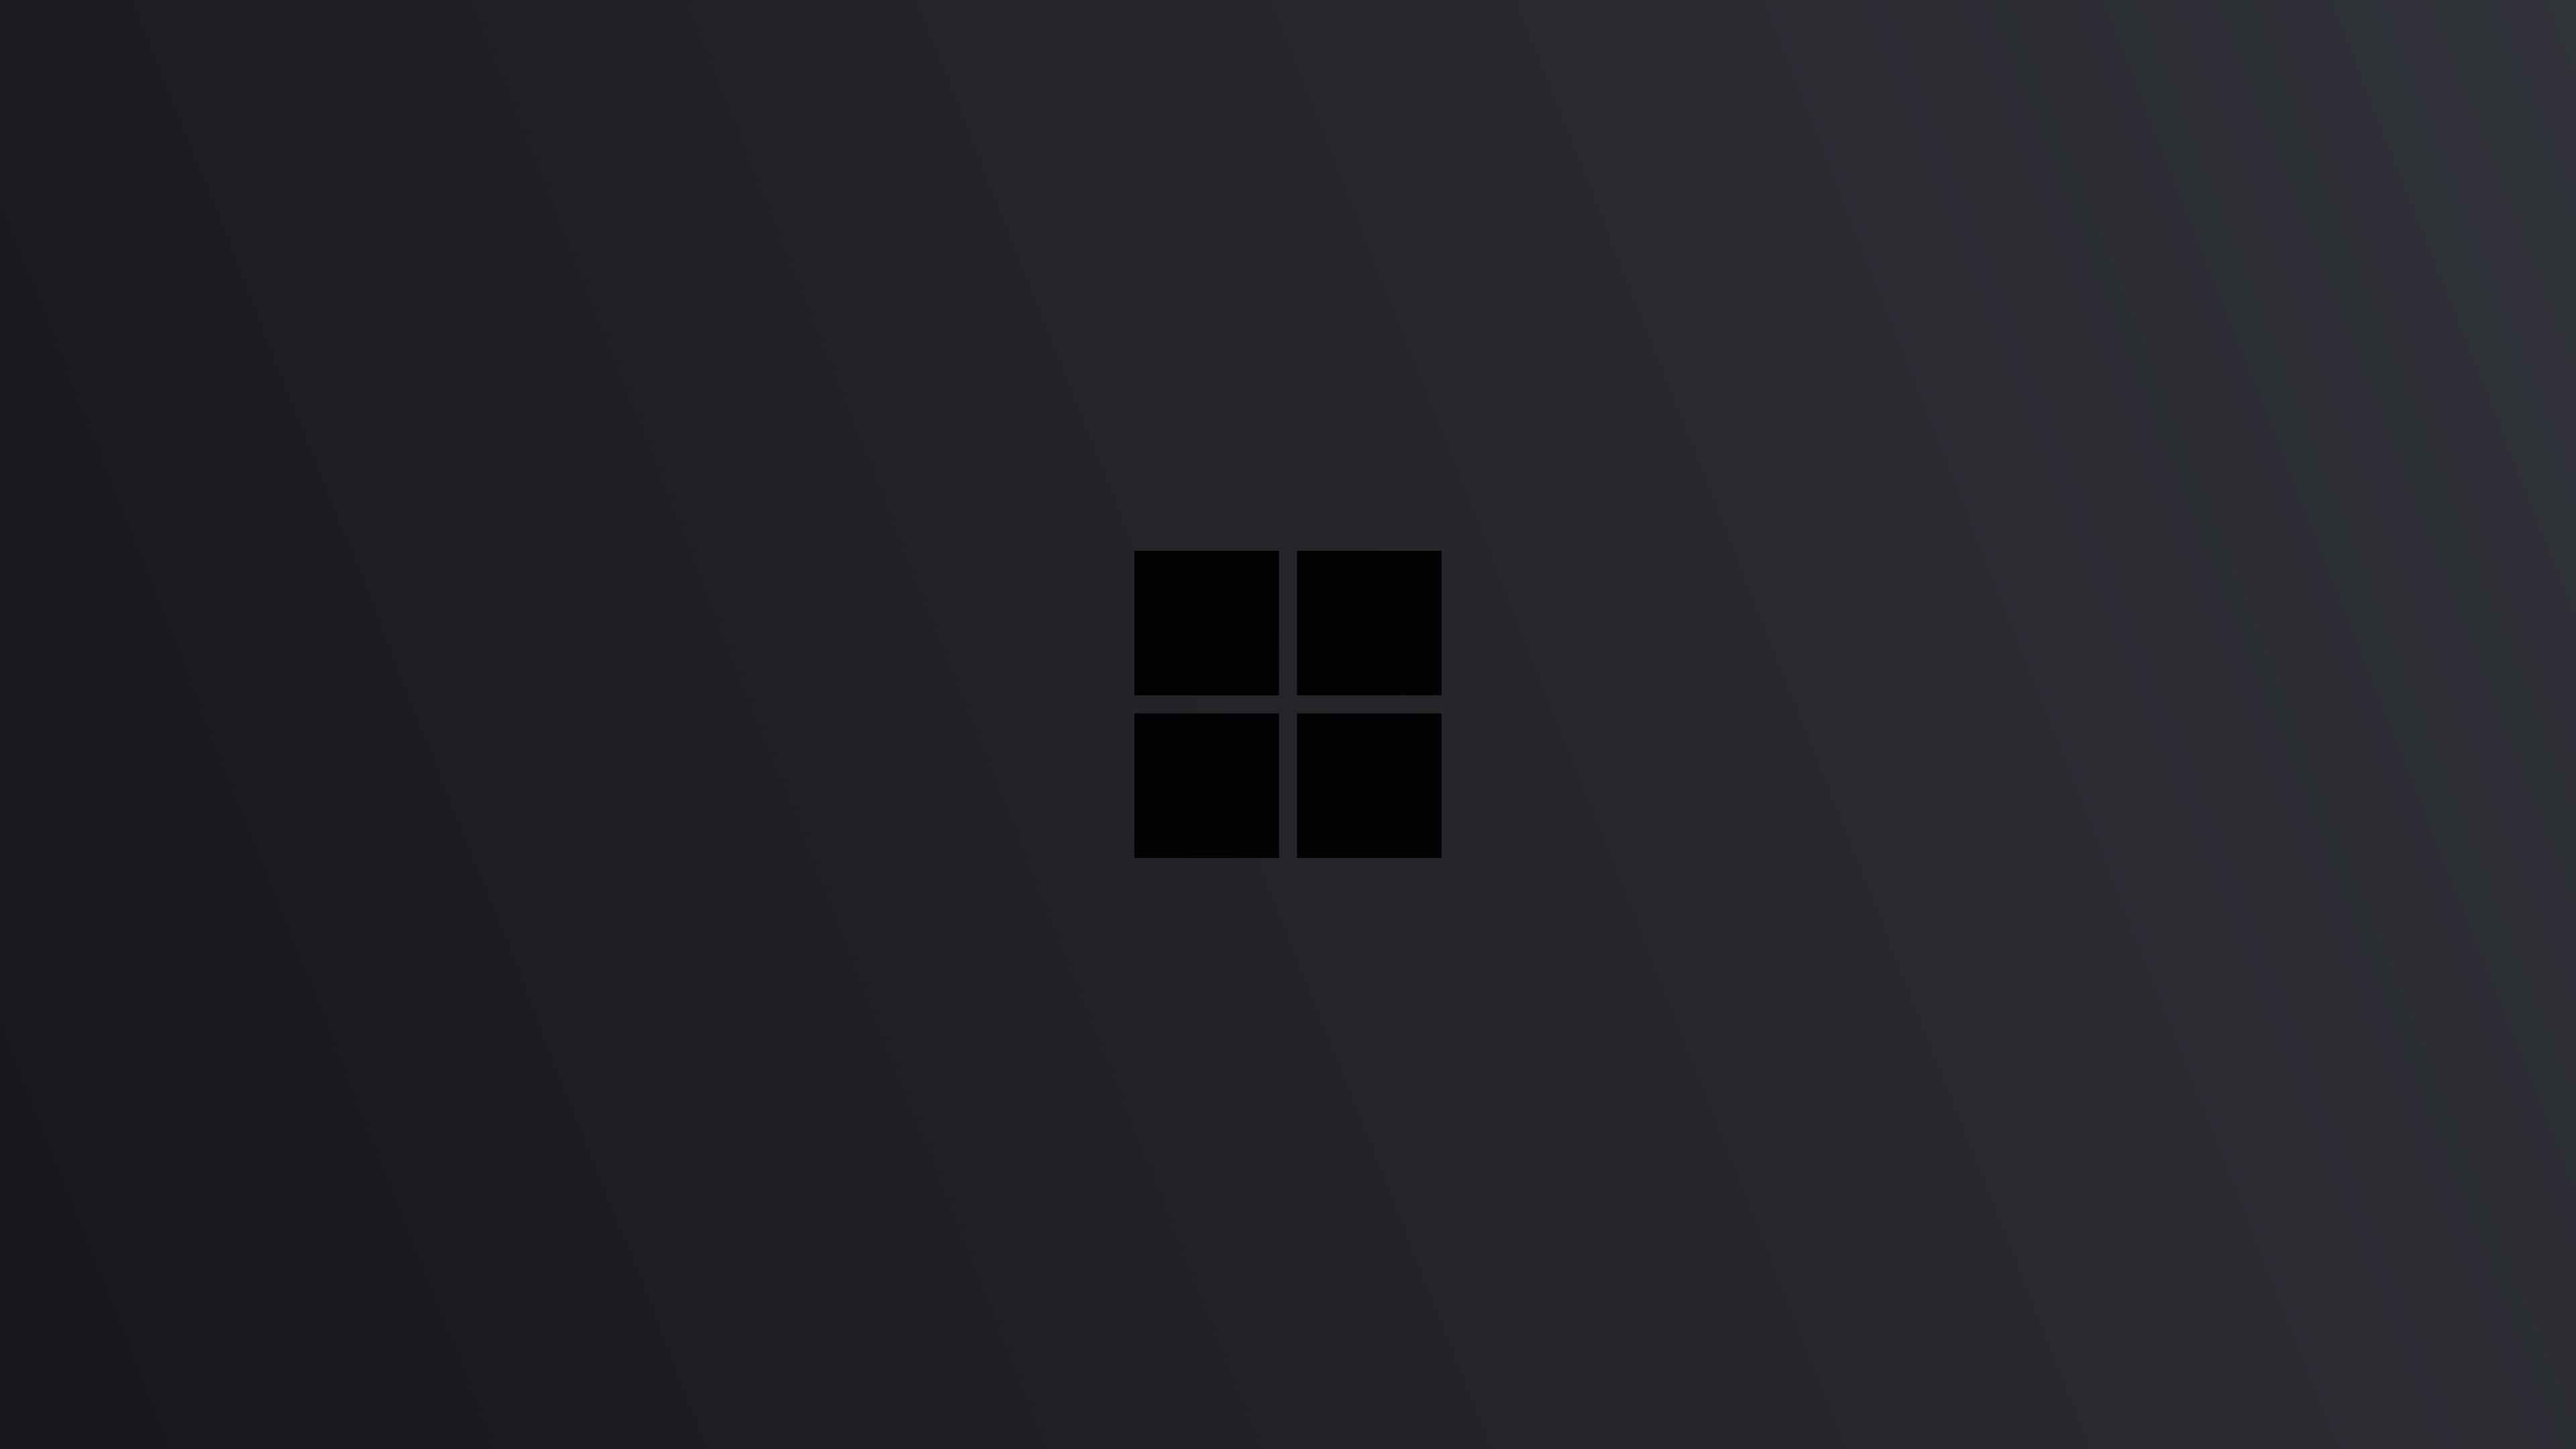 1280x1024 Windows 10 Logo Minimal Dark 1280x1024 Resolution